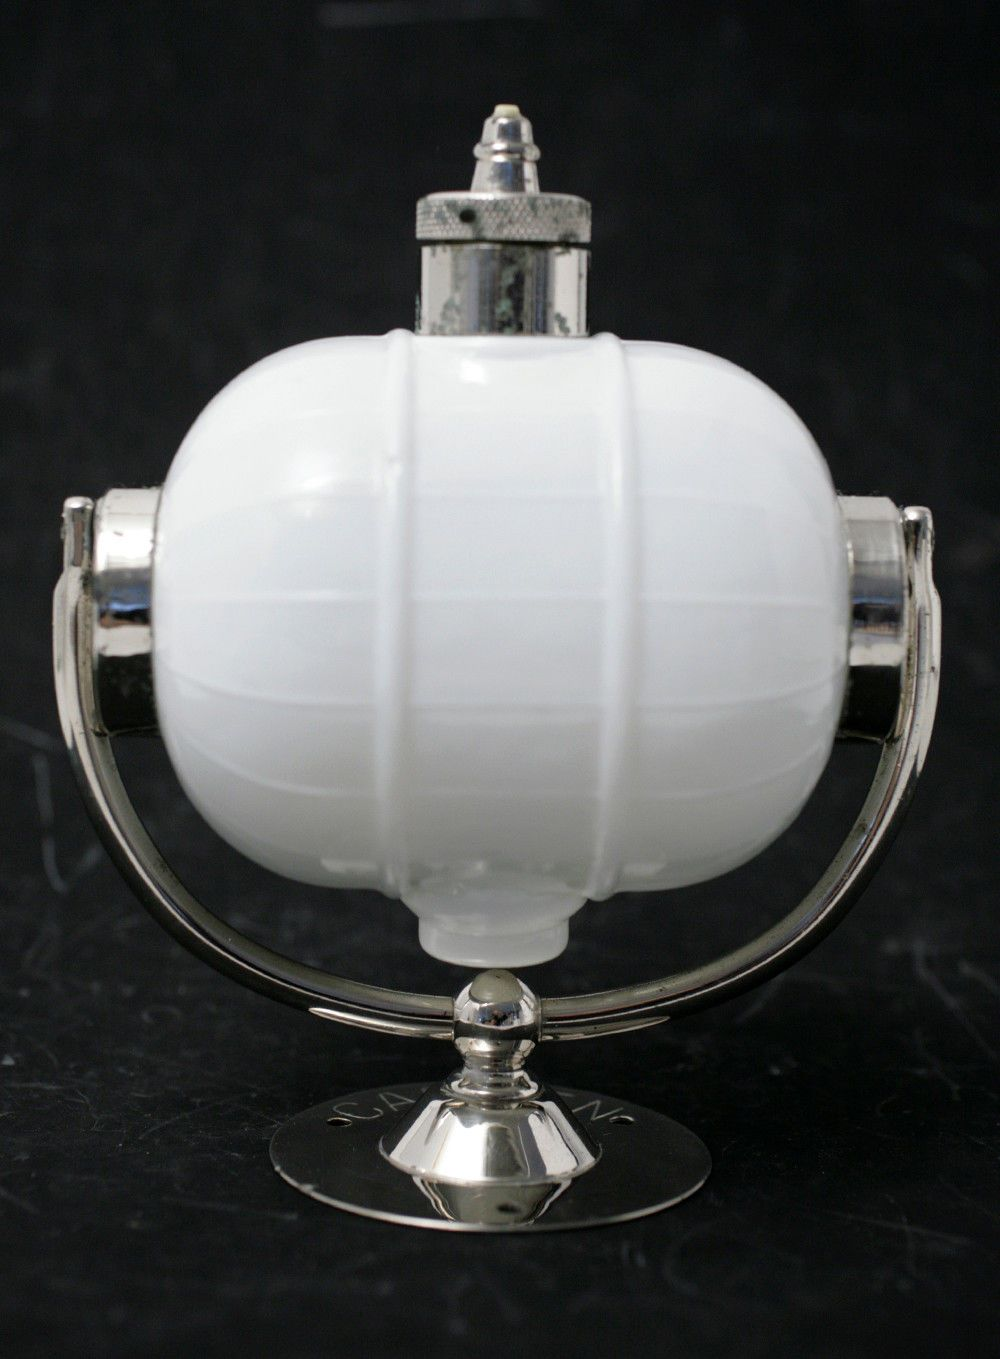 Art Deco Liquid Soap Dispenser Wall